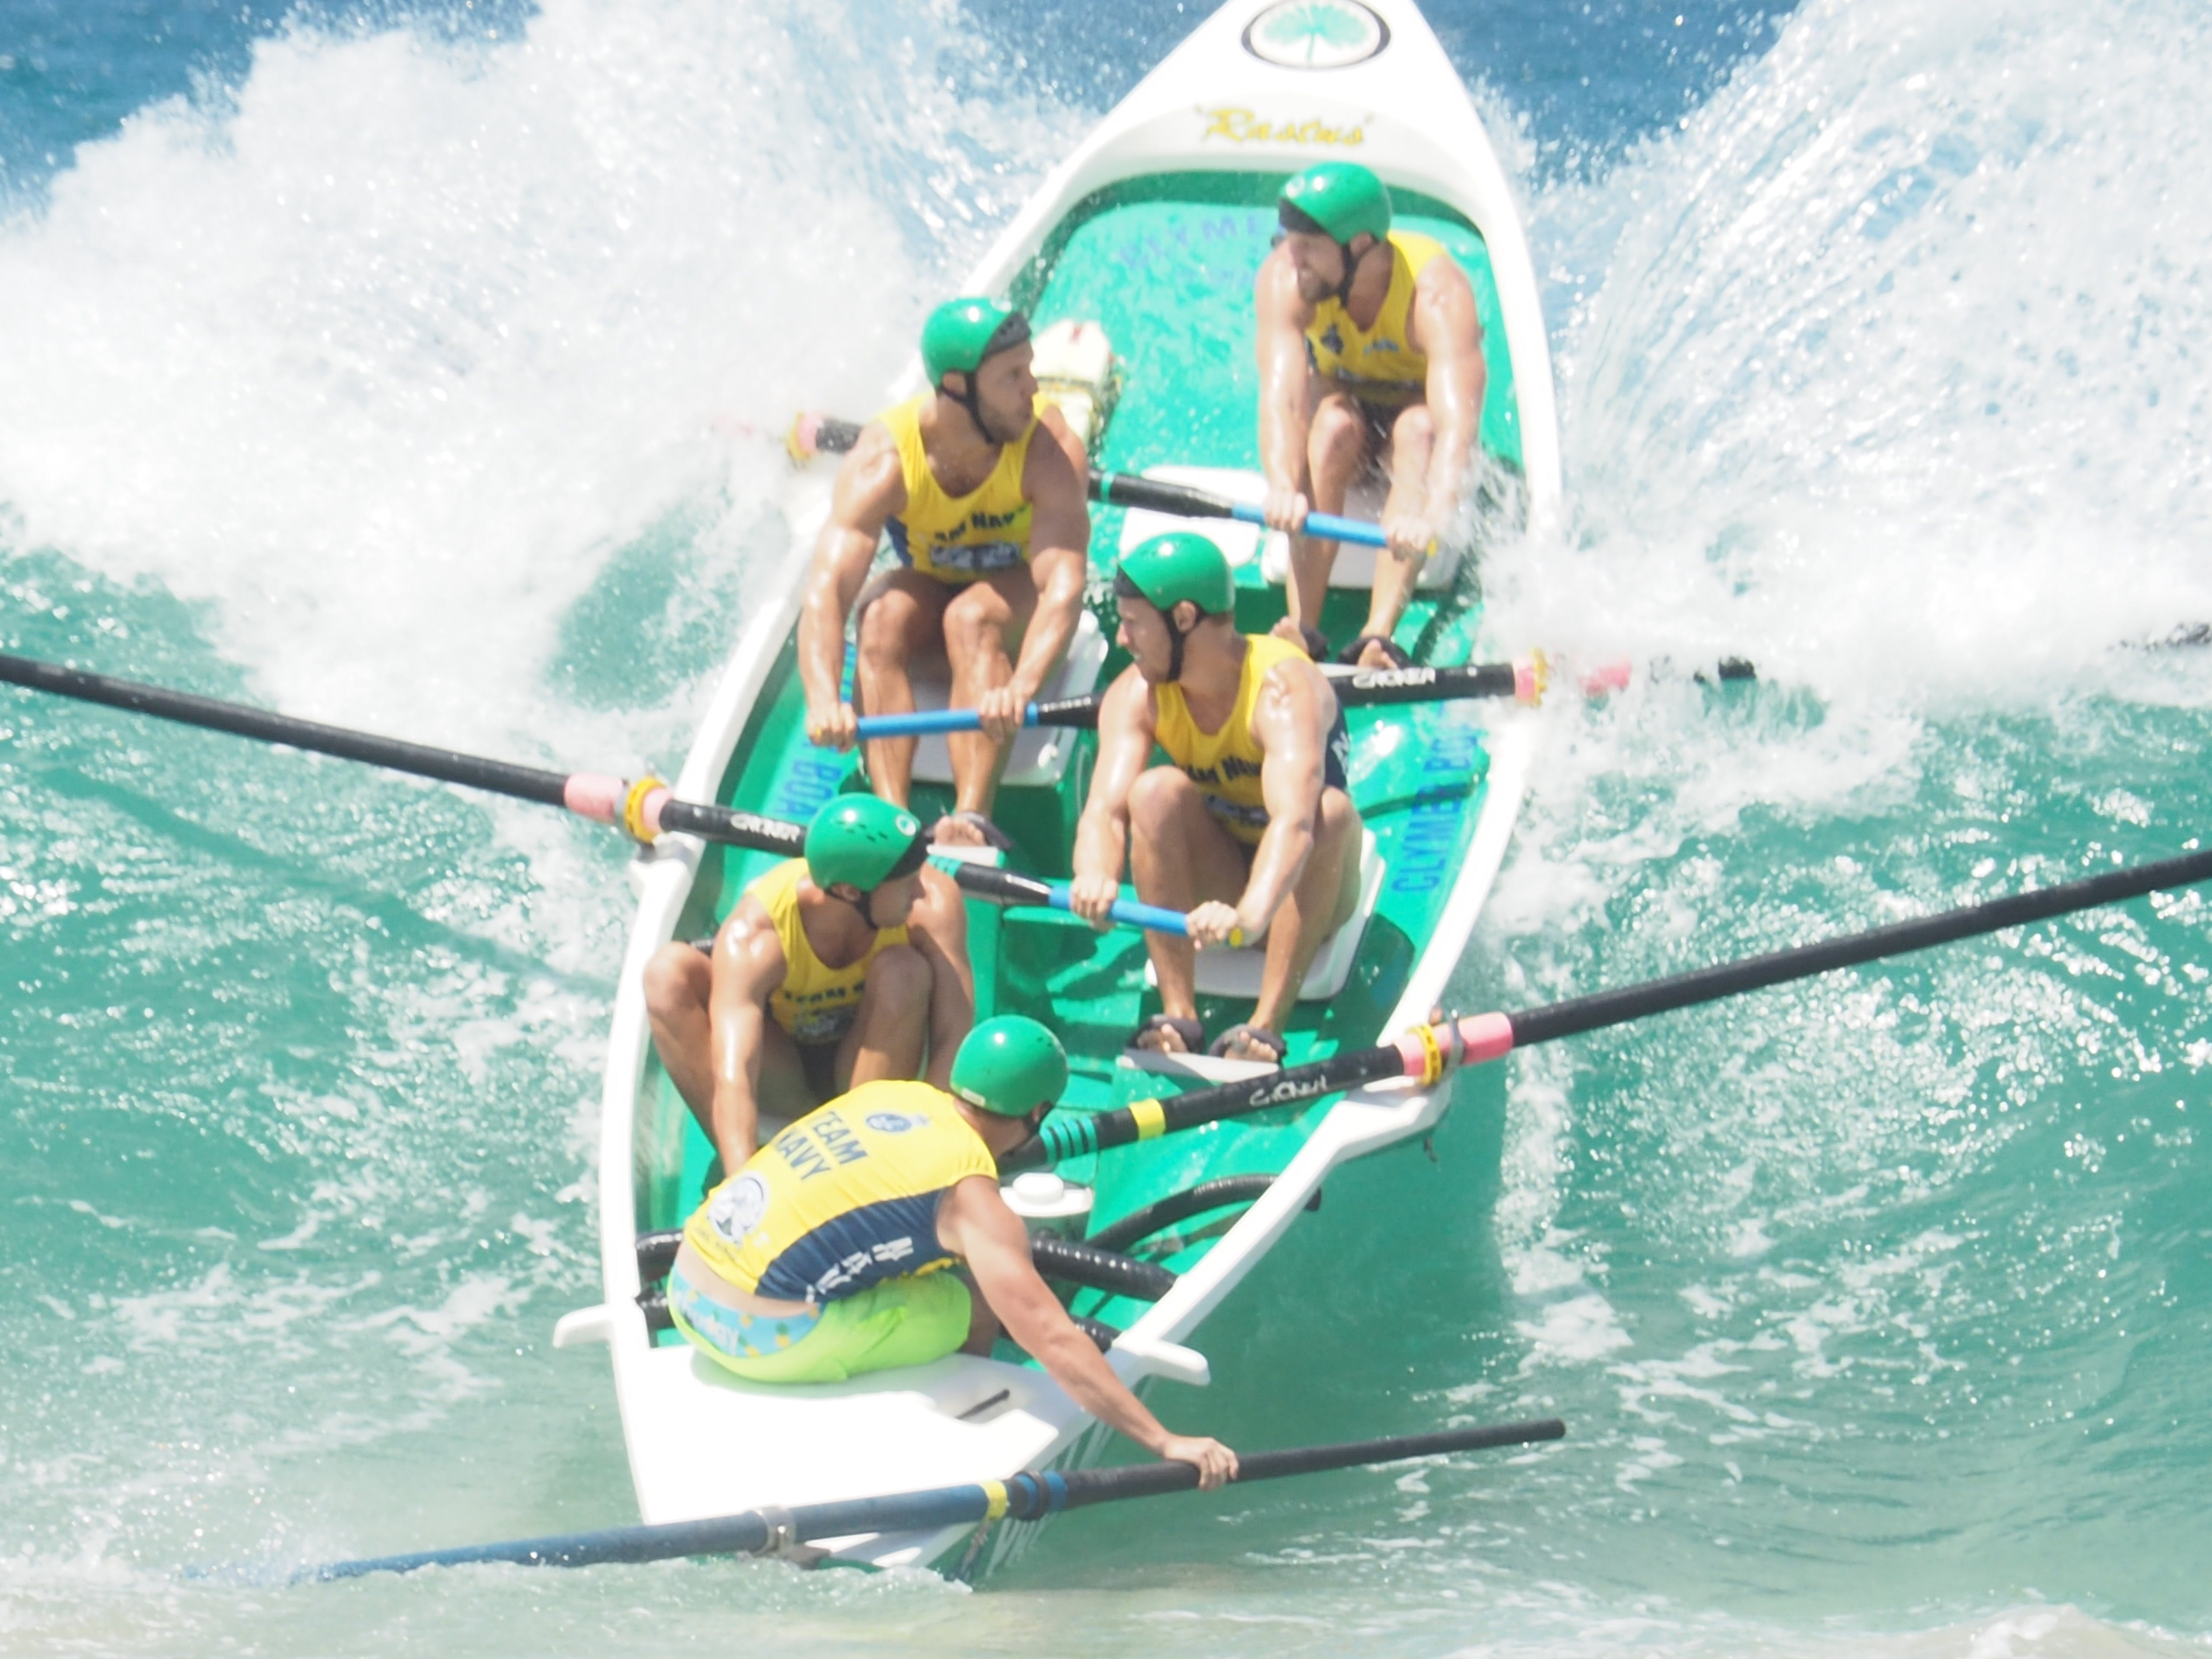 Australian Surf Rowers League Open - Accommodation Search